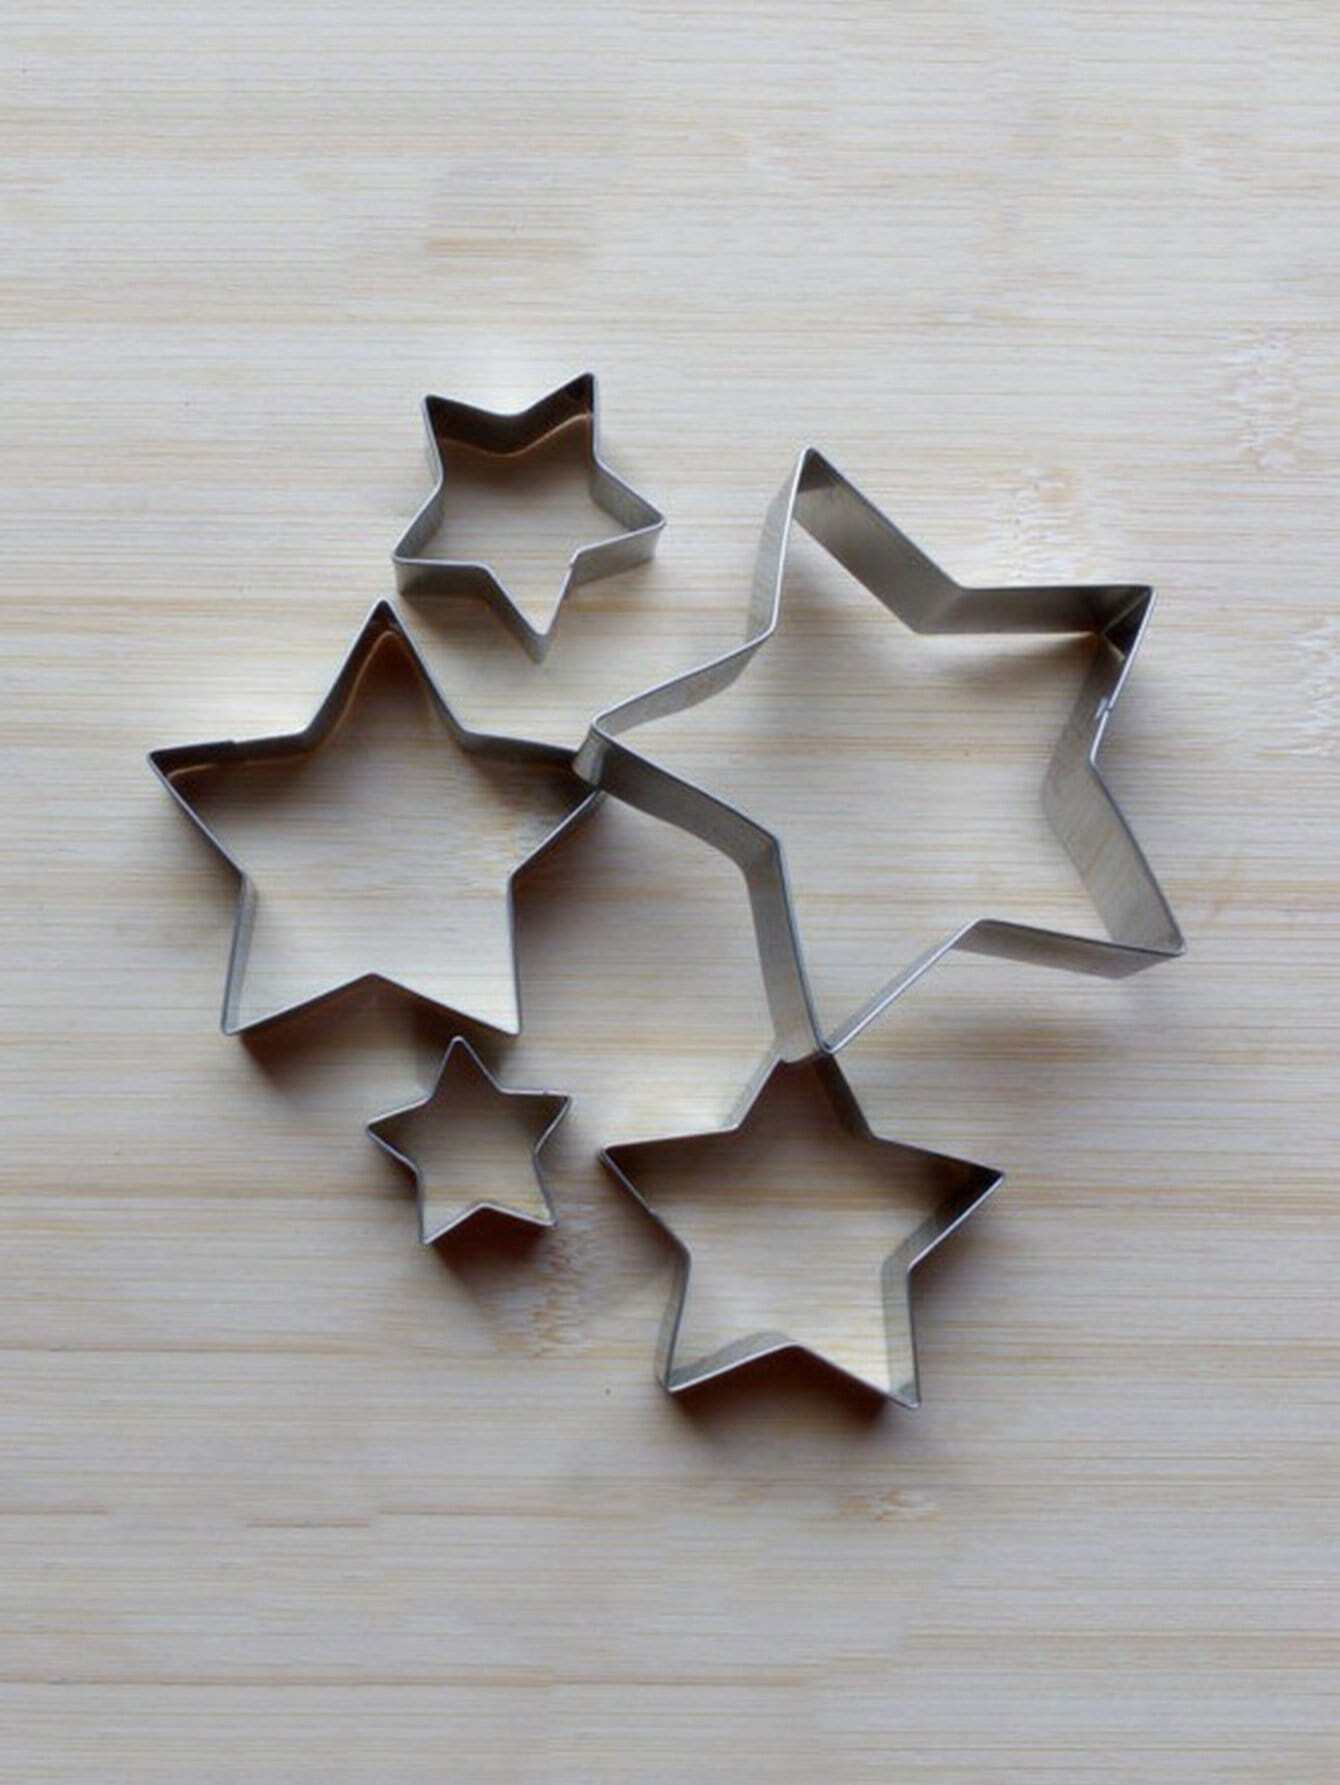 Stainless Steel Star Cookie Cutter 5pcs stainless steel star cookie cutter